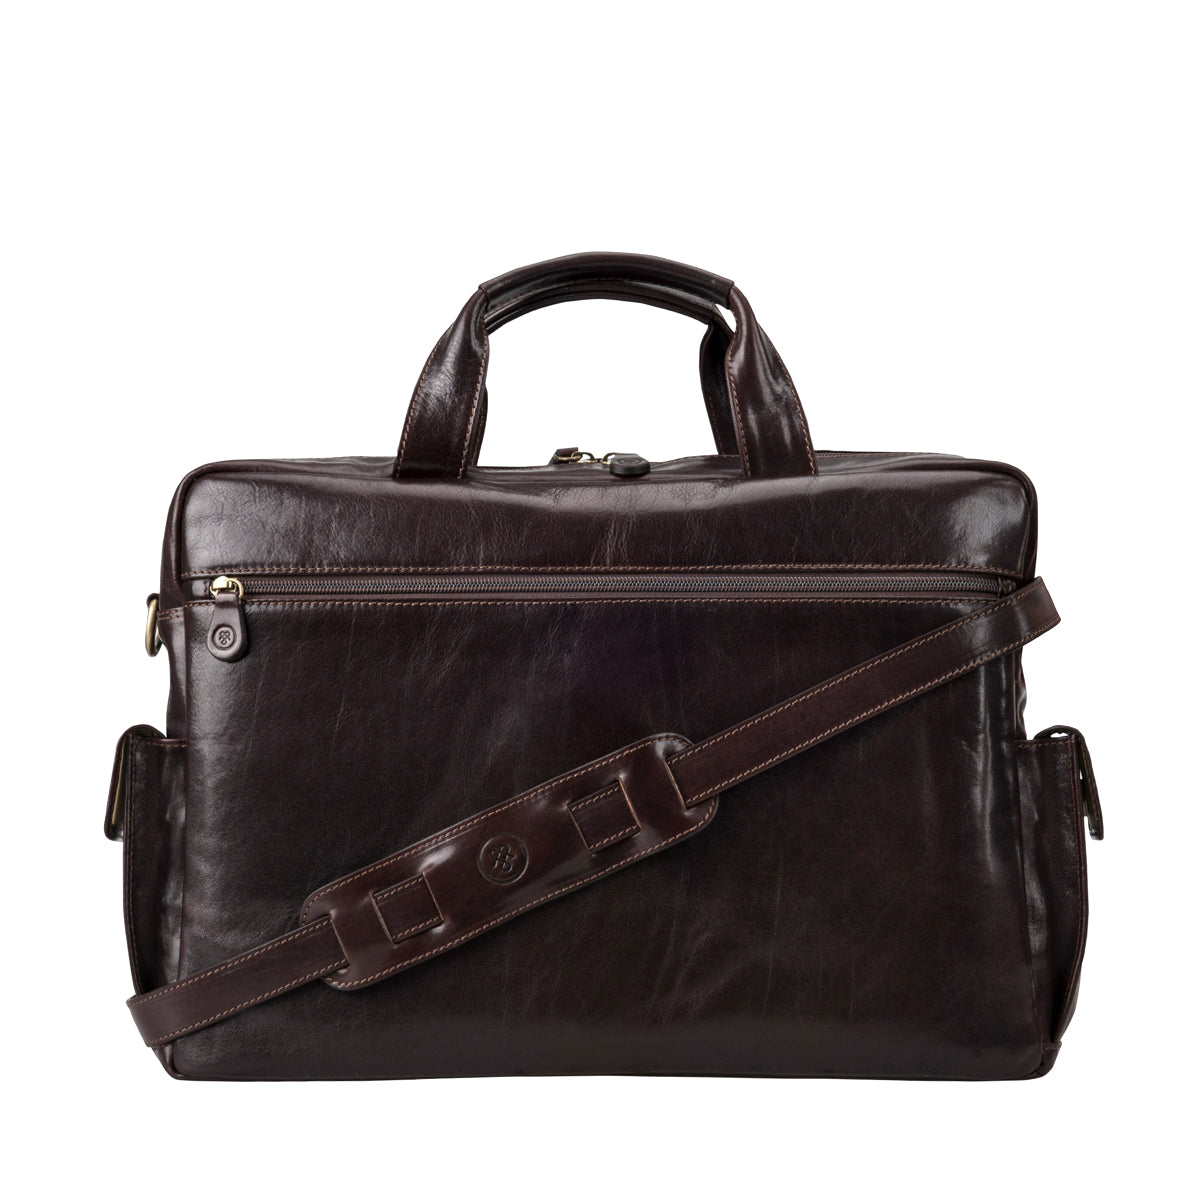 Image 4 of the 'Lagaro' Dark Chocolate Veg-Tanned Leather Briefcase